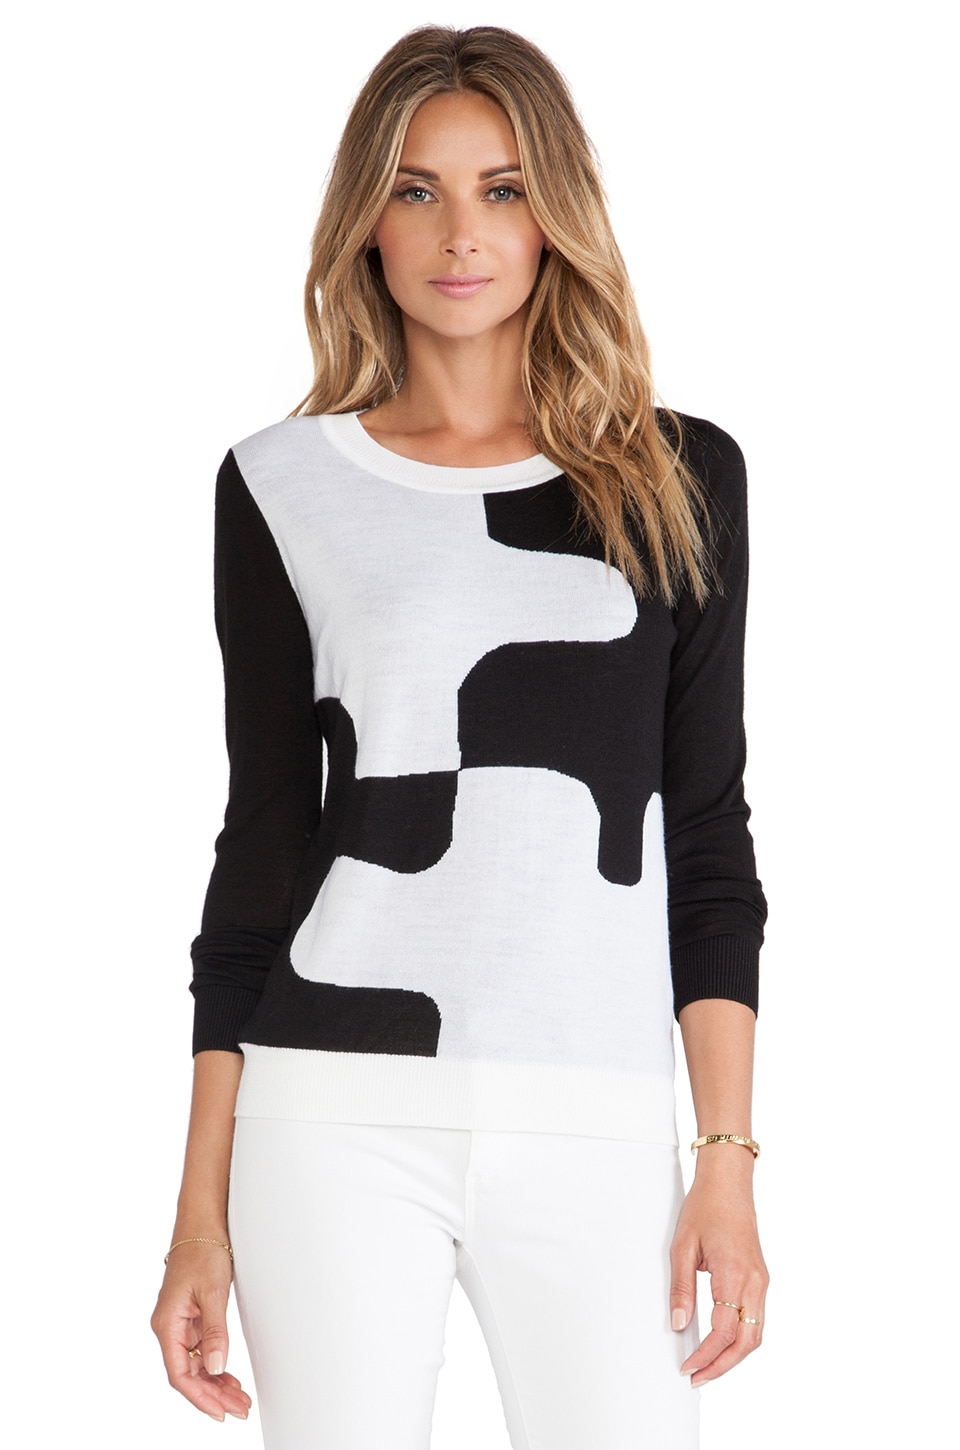 Diane von Furstenberg Daphne Pullover in Black & Optic White